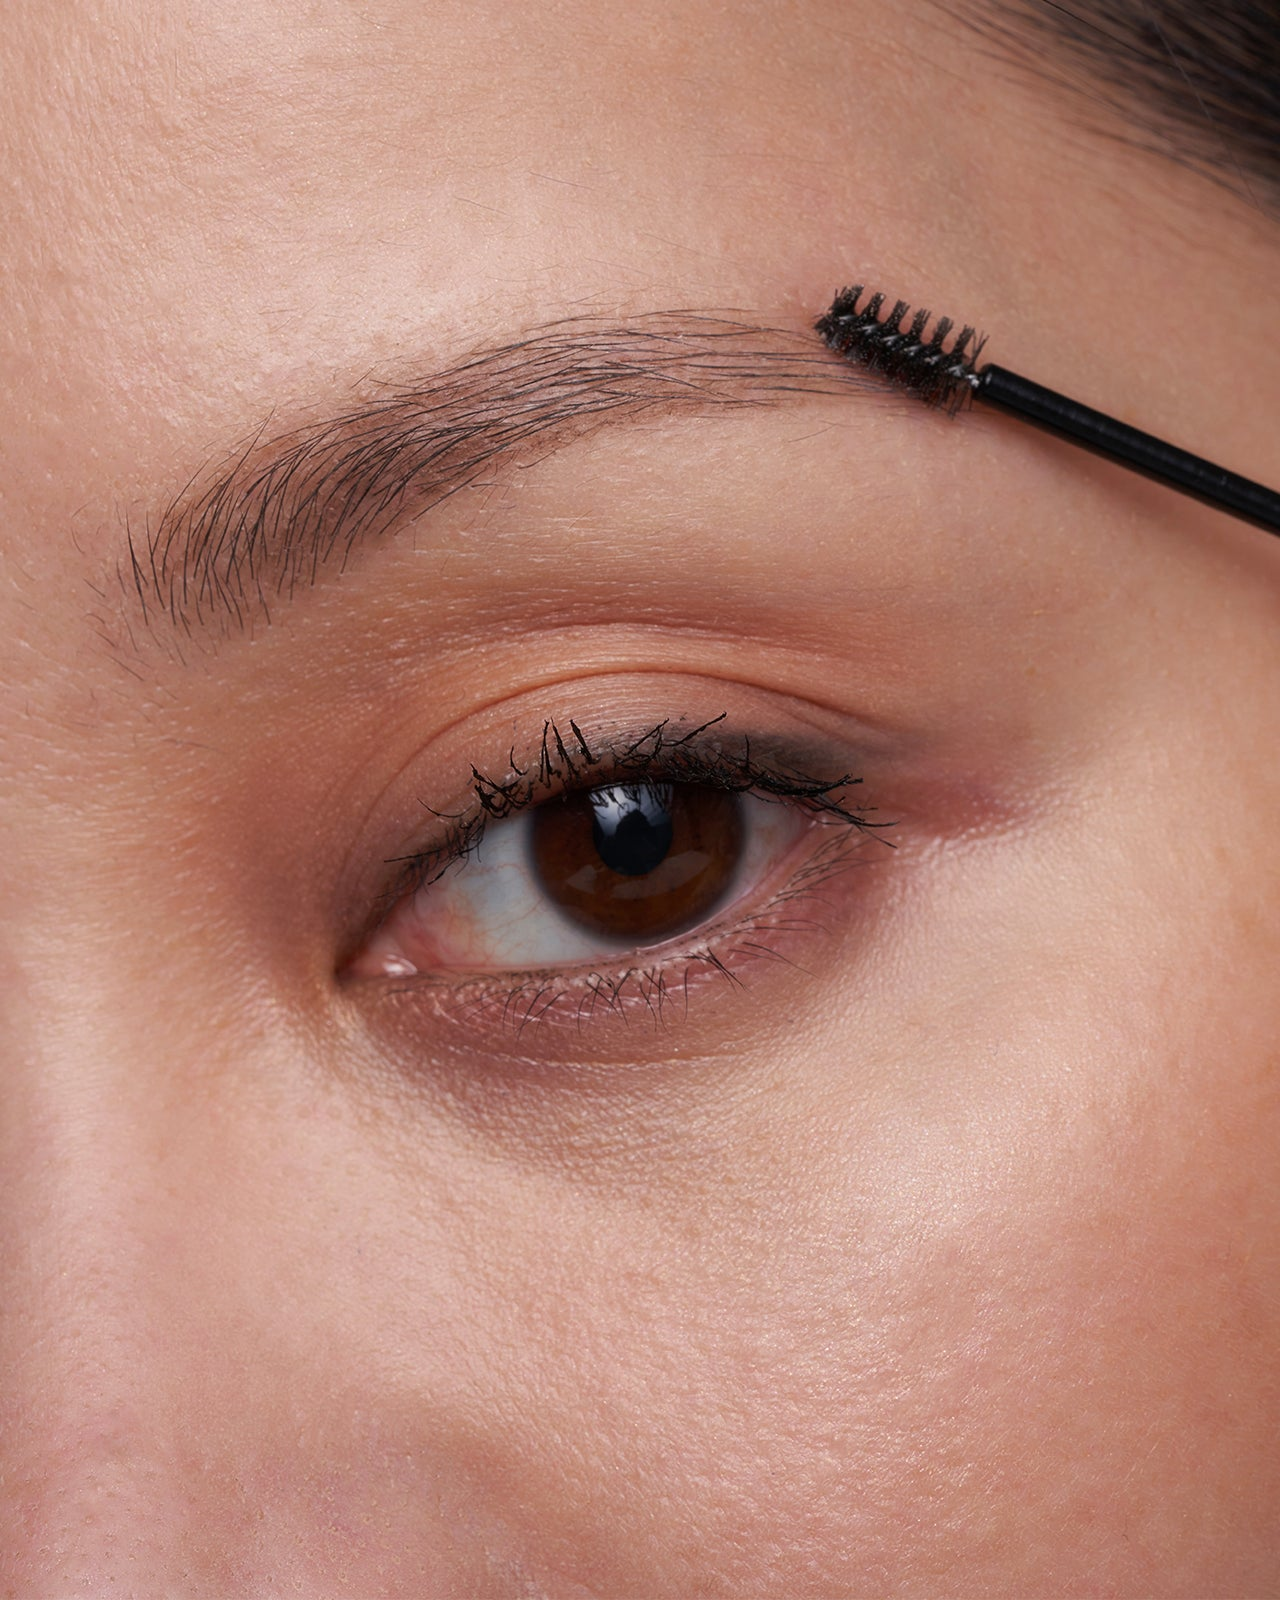 flexibrow-clear-brow-gel-michelle-phan-model-1